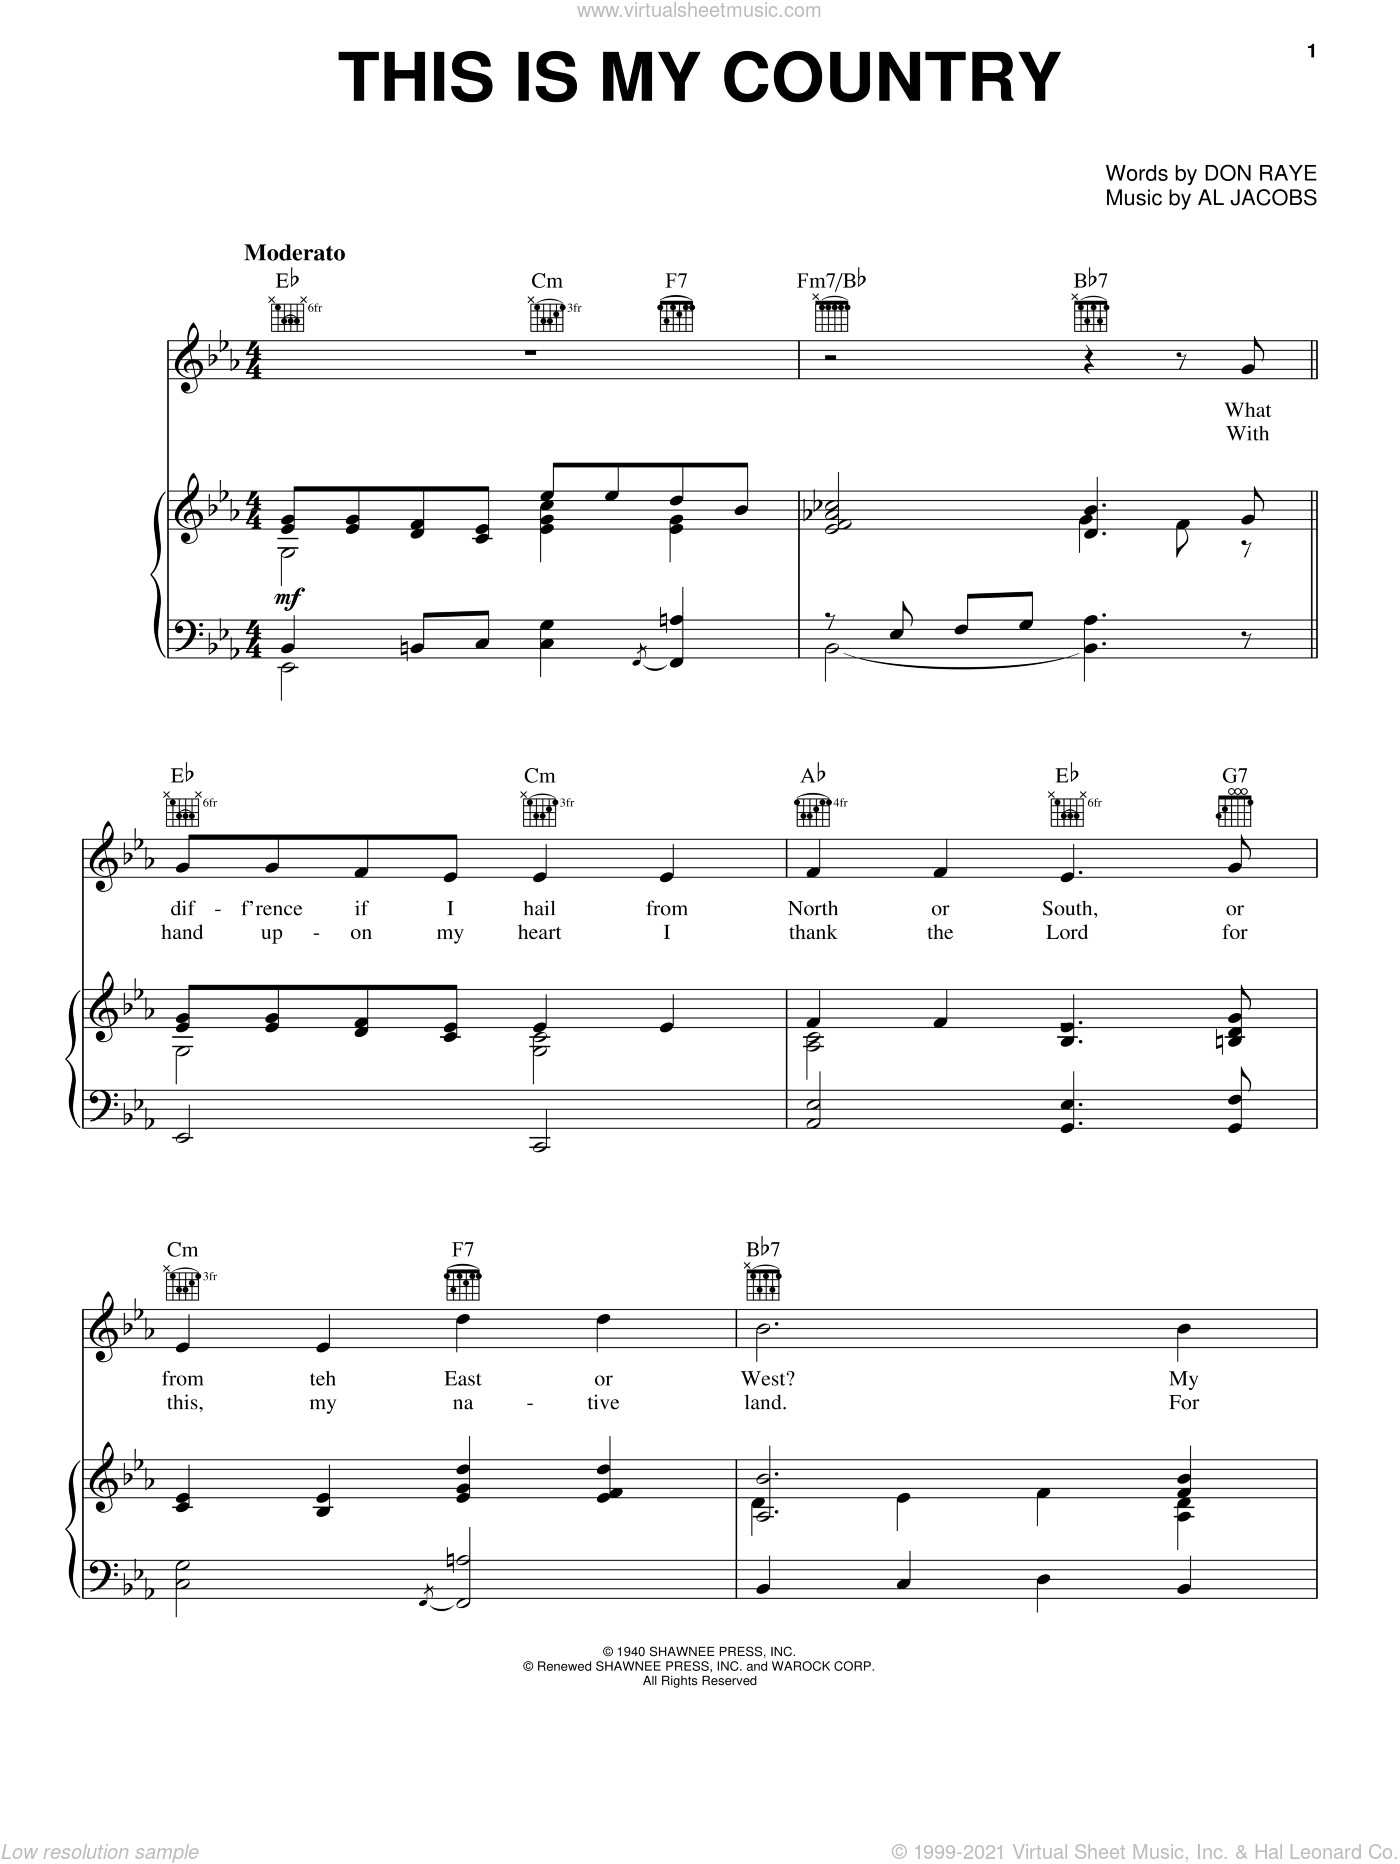 This Is My Country sheet music for voice, piano or guitar by Tennessee Ernie Ford, Al Jacobs and Don Raye, intermediate skill level